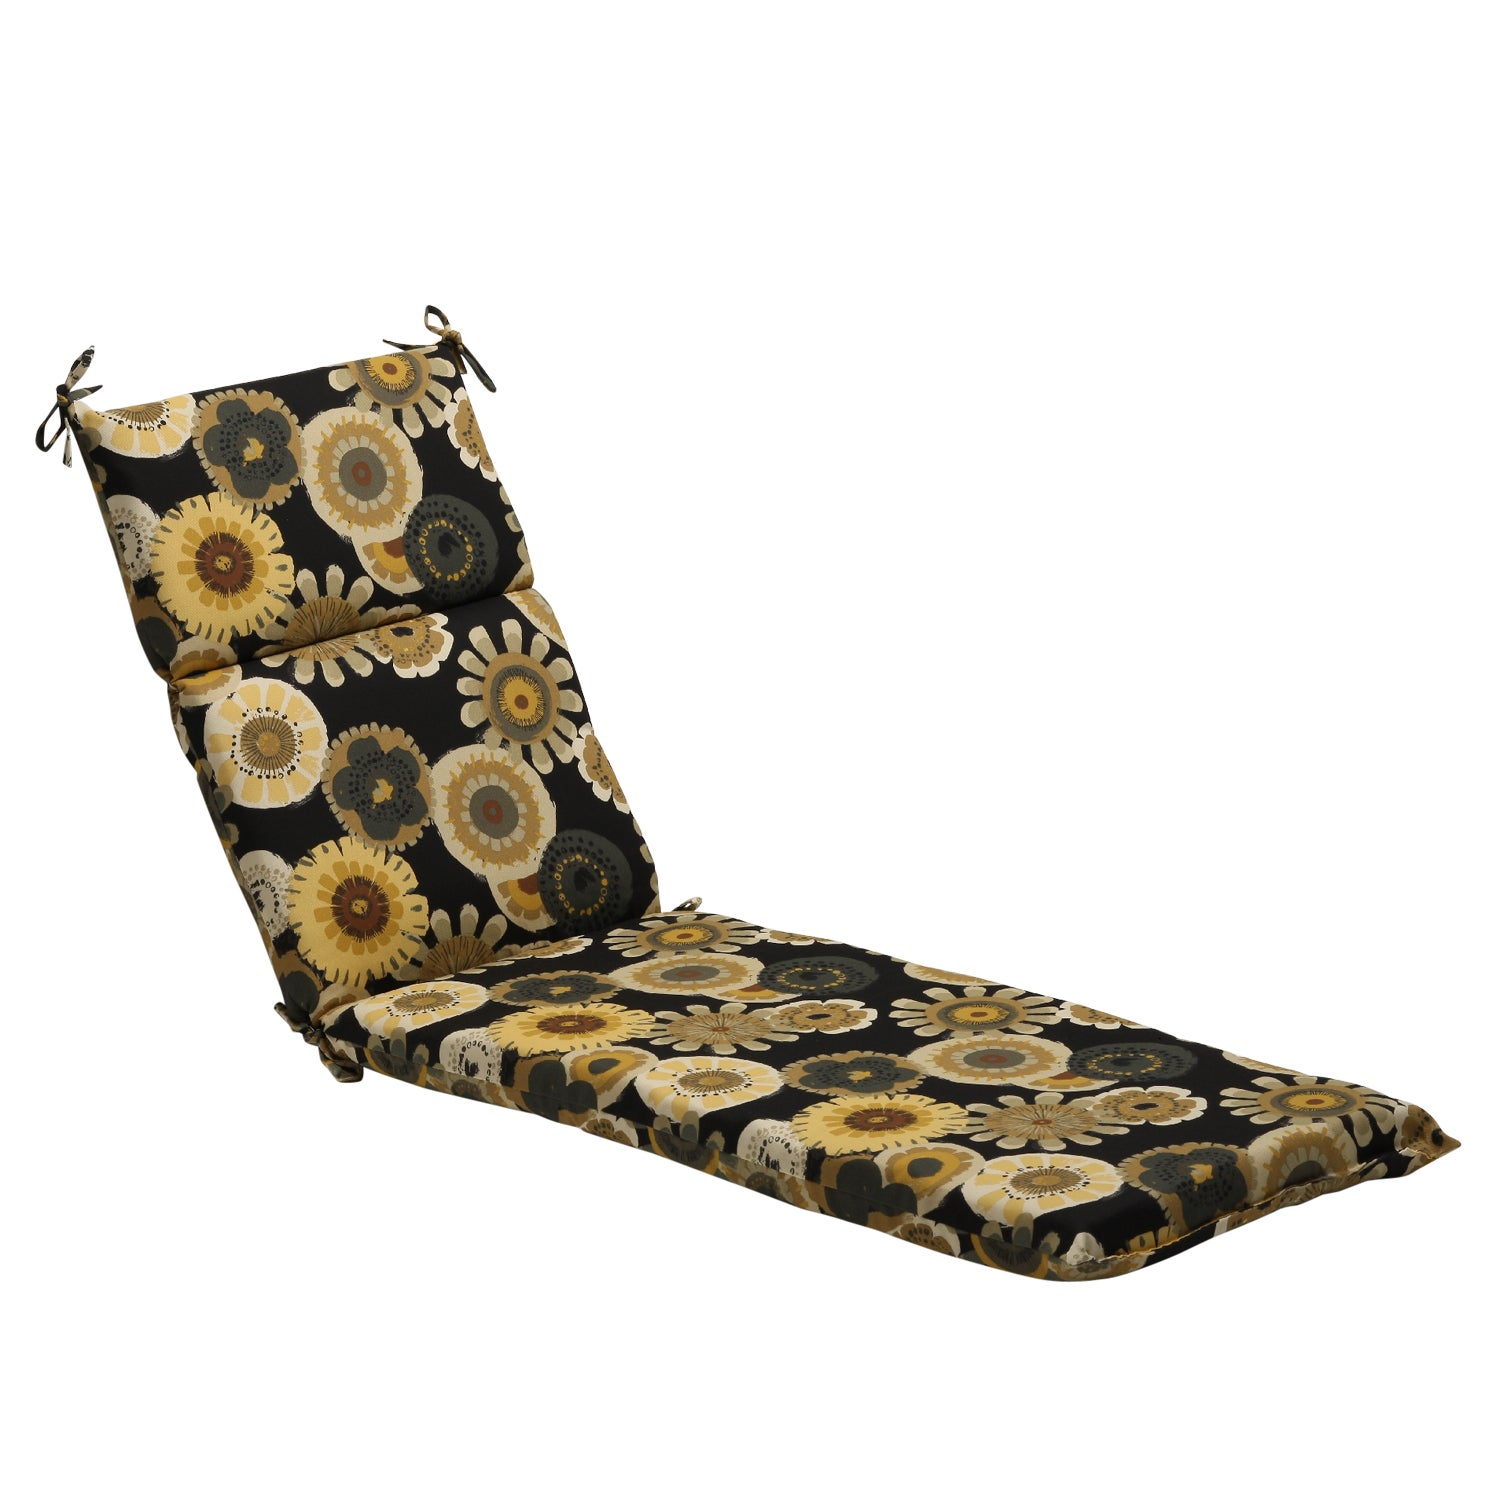 Pillow Perfect Black/Yellow Floral Outdoor Chaise Lounge Cushion at Sears.com